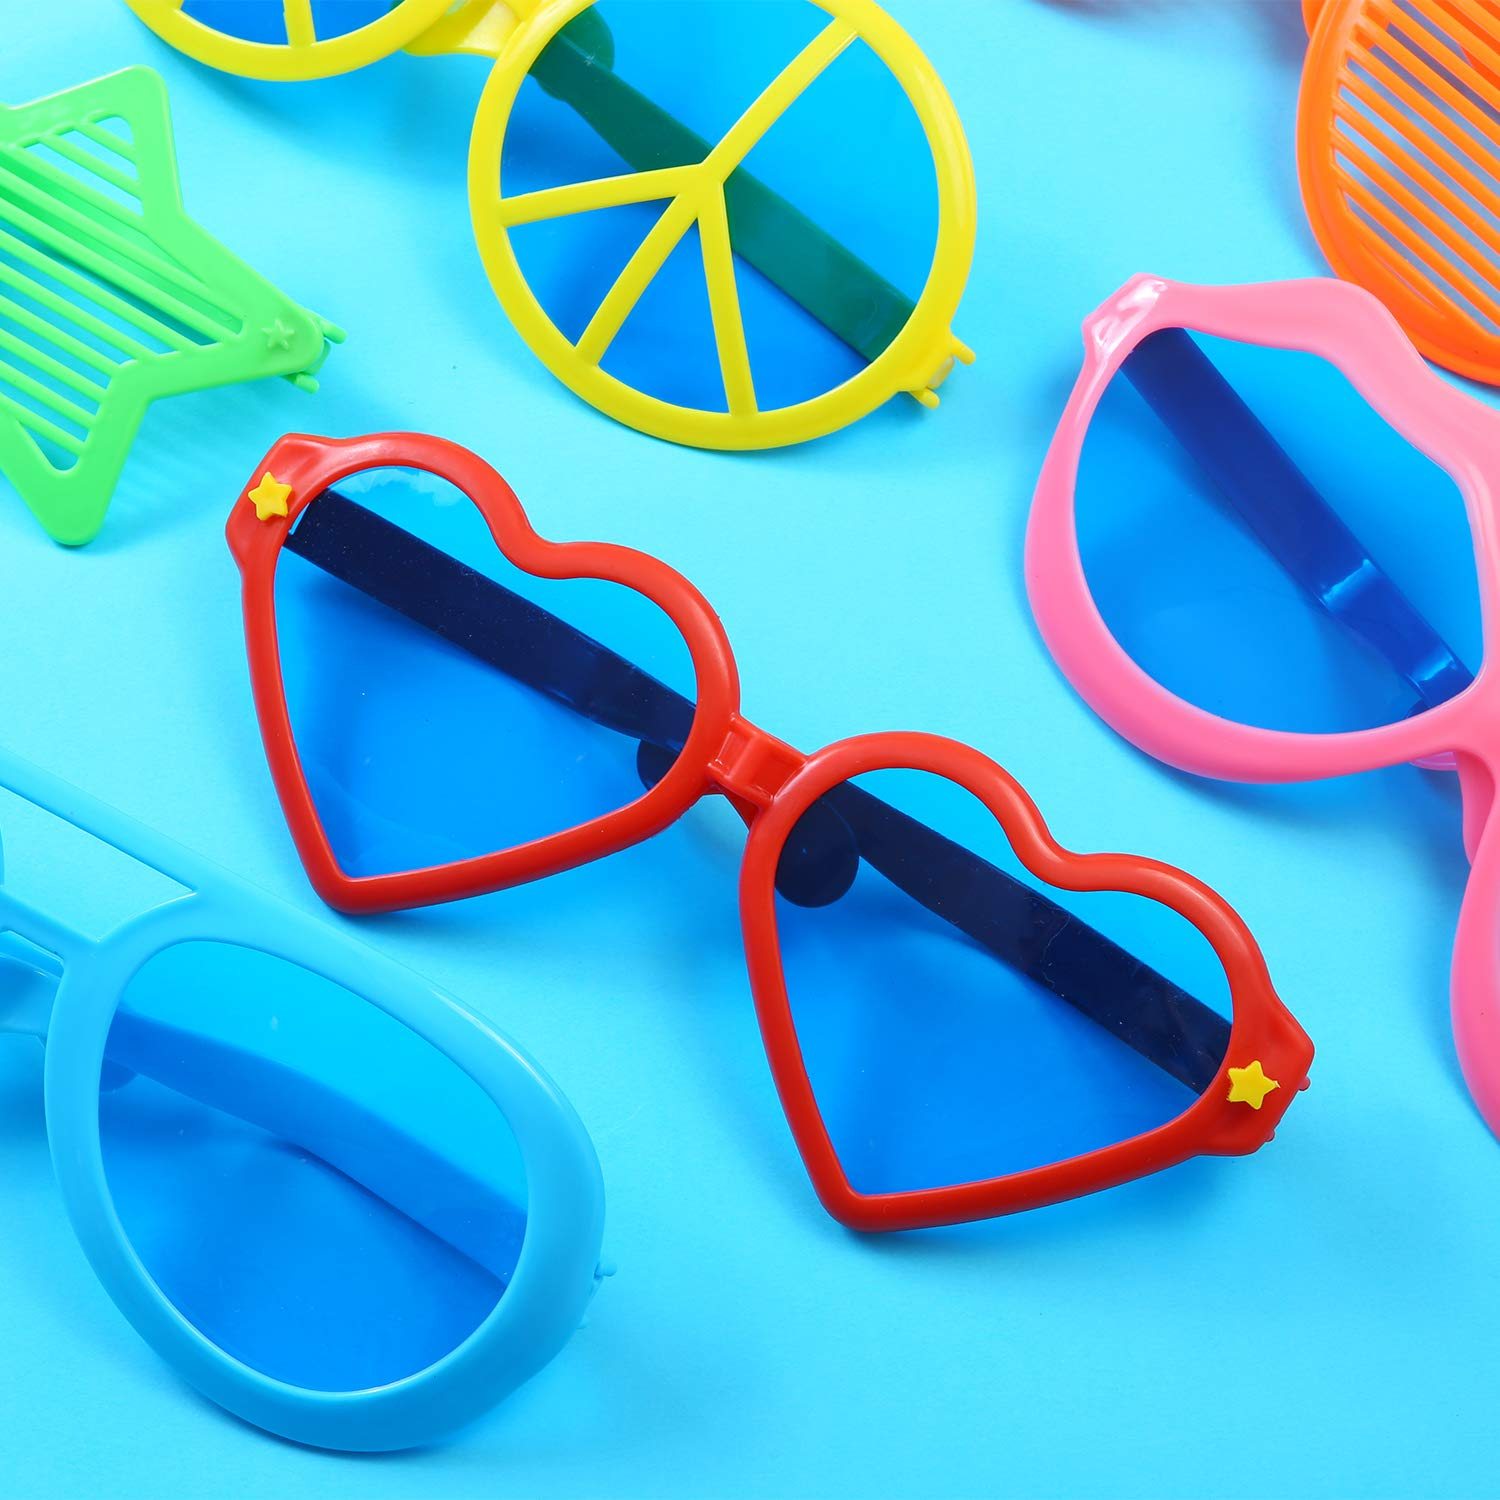 Tupa 6 Pieces Plastic Jumbo Fun Sunglasses Colorful Fun Glasses Star Heart Shaped Party Eyeglasses for Hawaiian Beach Photo Props Costume Fancy Dress Party Supplies Mixed Colors B